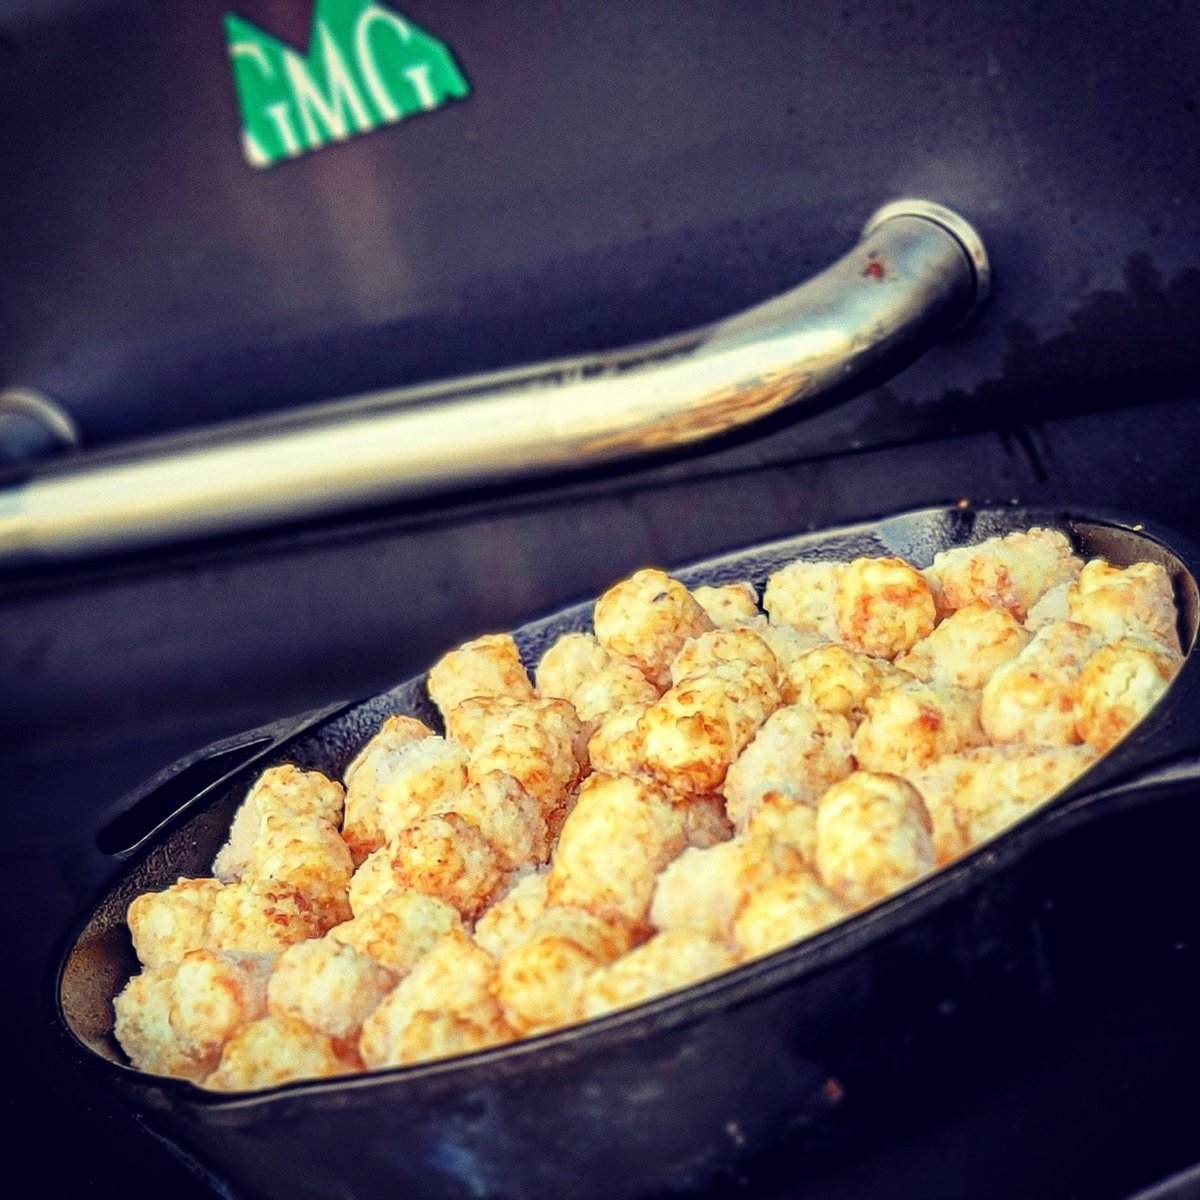 Tater tots in the @LodgeCastIron goin on the @GMGrills Daniel Boone baby!  @Chiefs baby!    #RubSumLUV #bbqlife #bbqfamily #bbqnation #kcgrillingco #gmg #gmgnation #tatertots #lodge #chiefskingdom https://t.co/4IQkS8ksR5